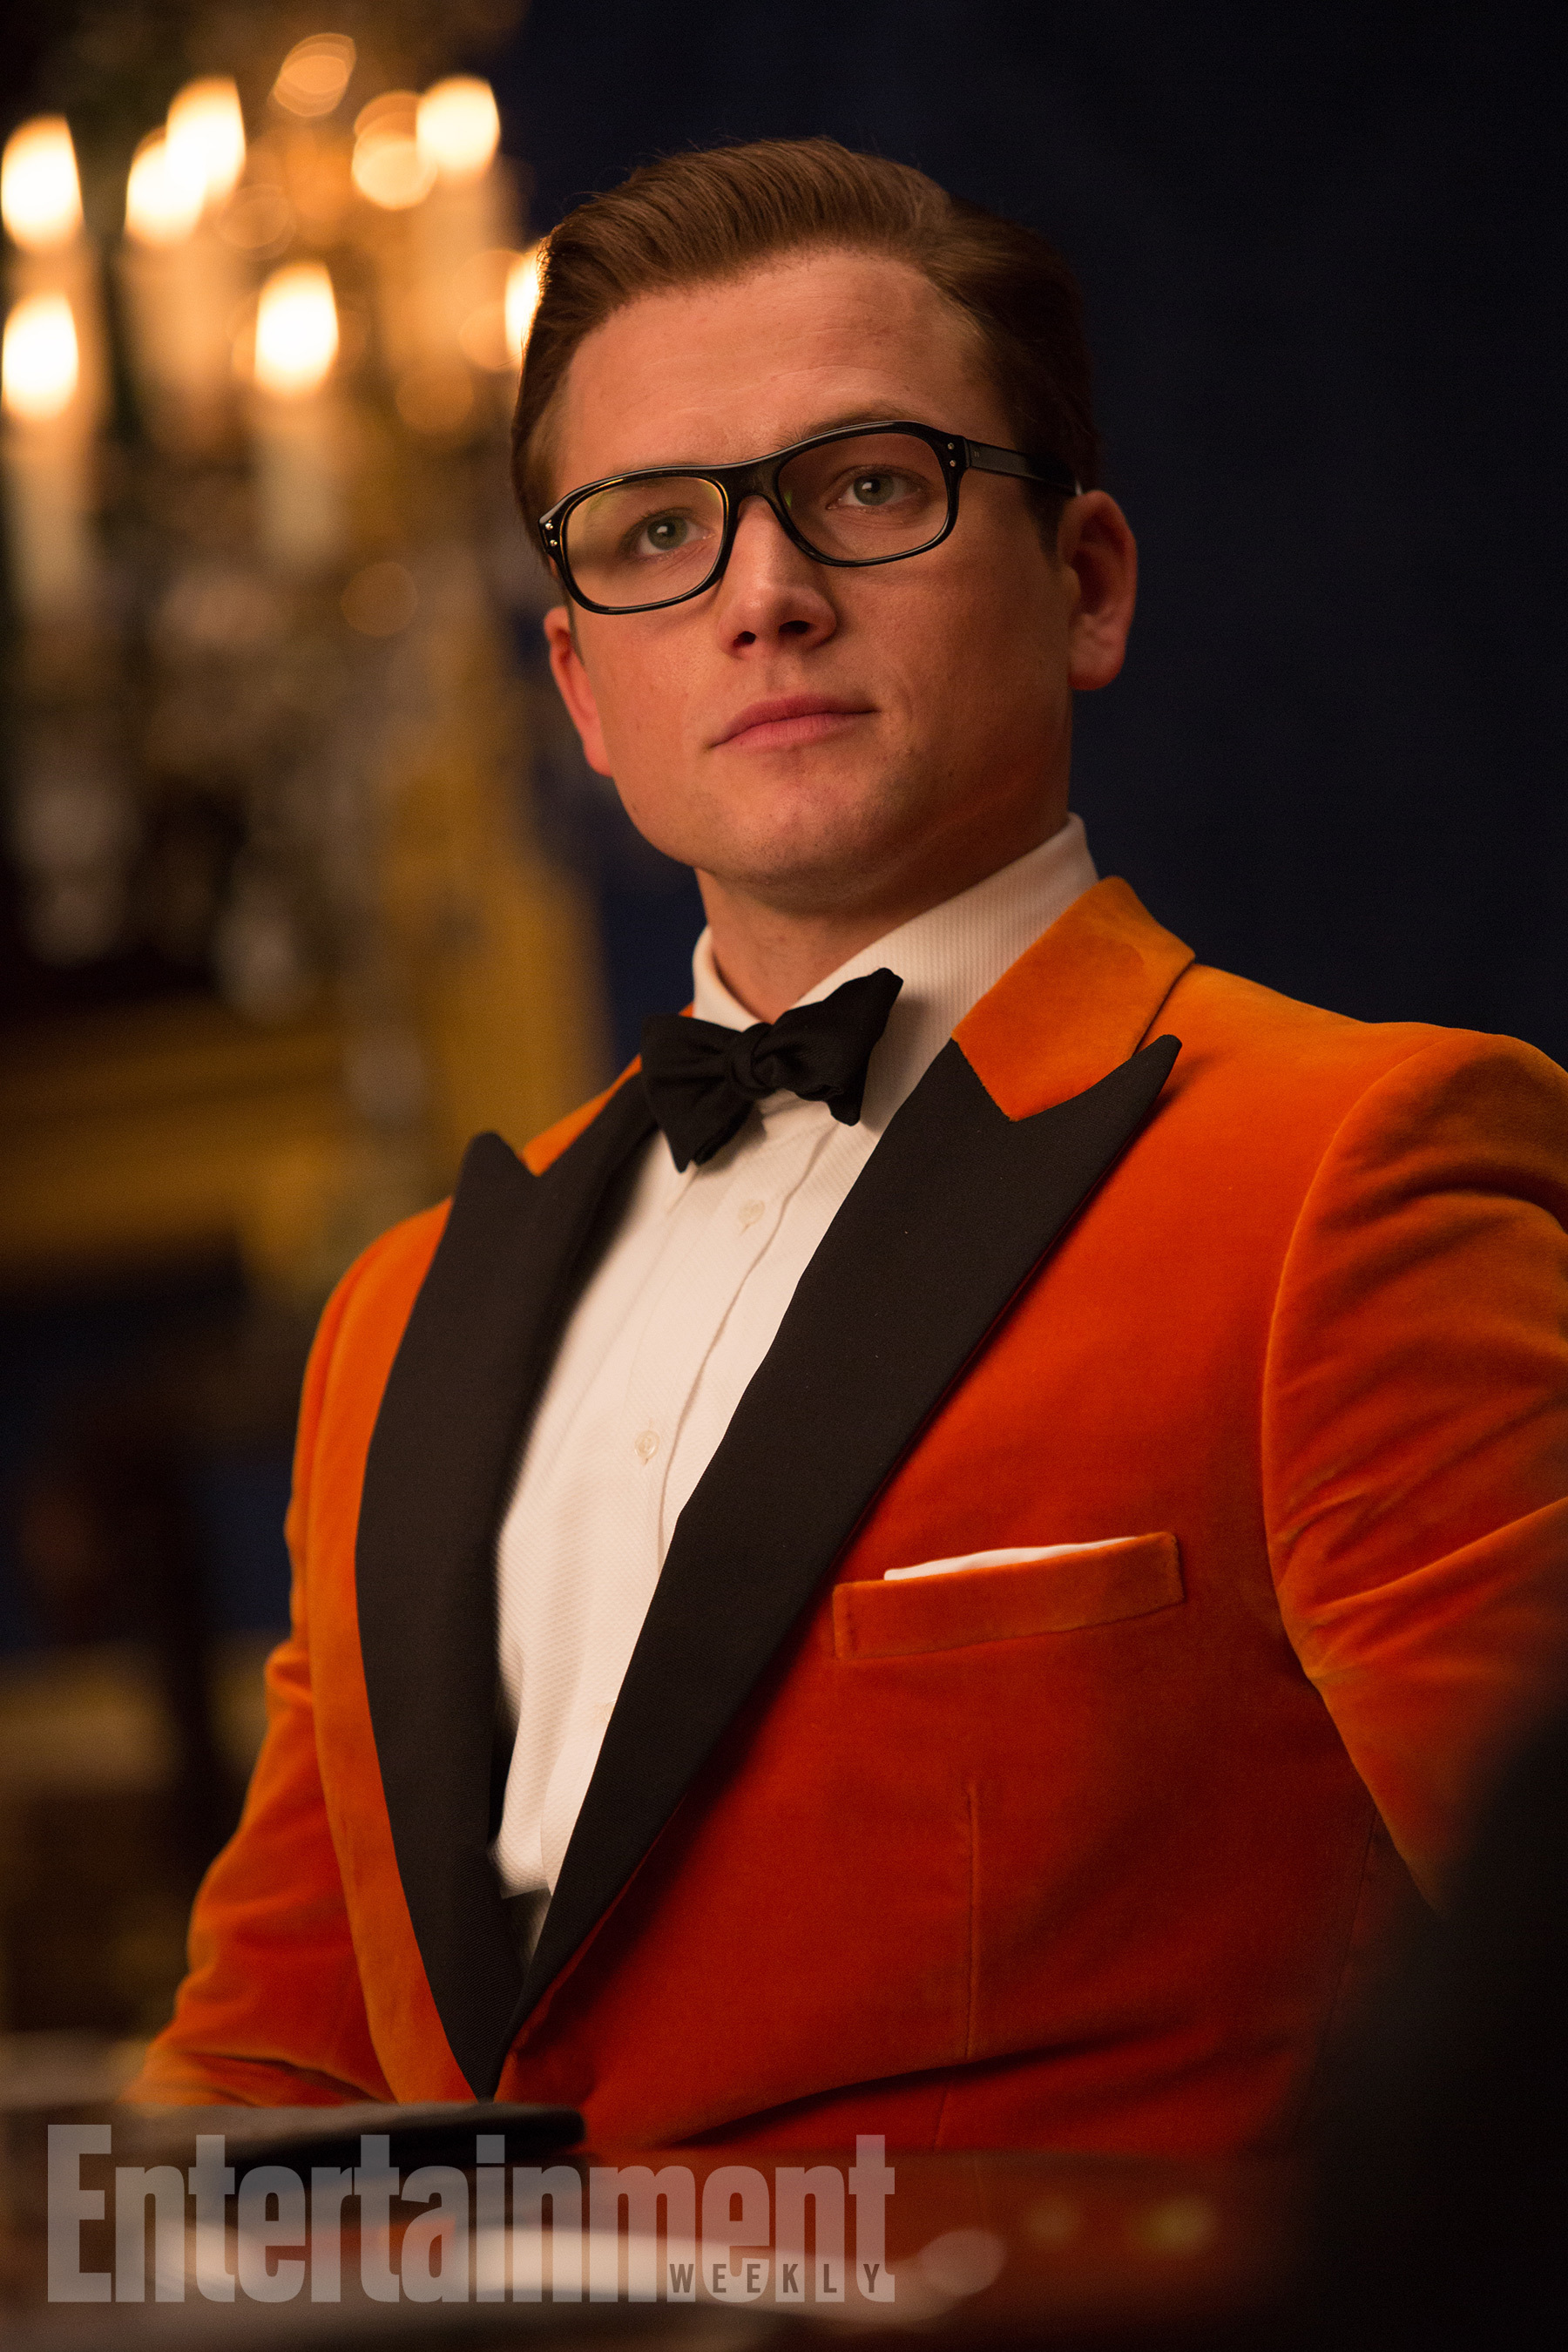 new-kingsman-the-golden-circle-photos-give-us-a-first-look-at-channing-tatum-jeff-bridges-and-halle-berry7